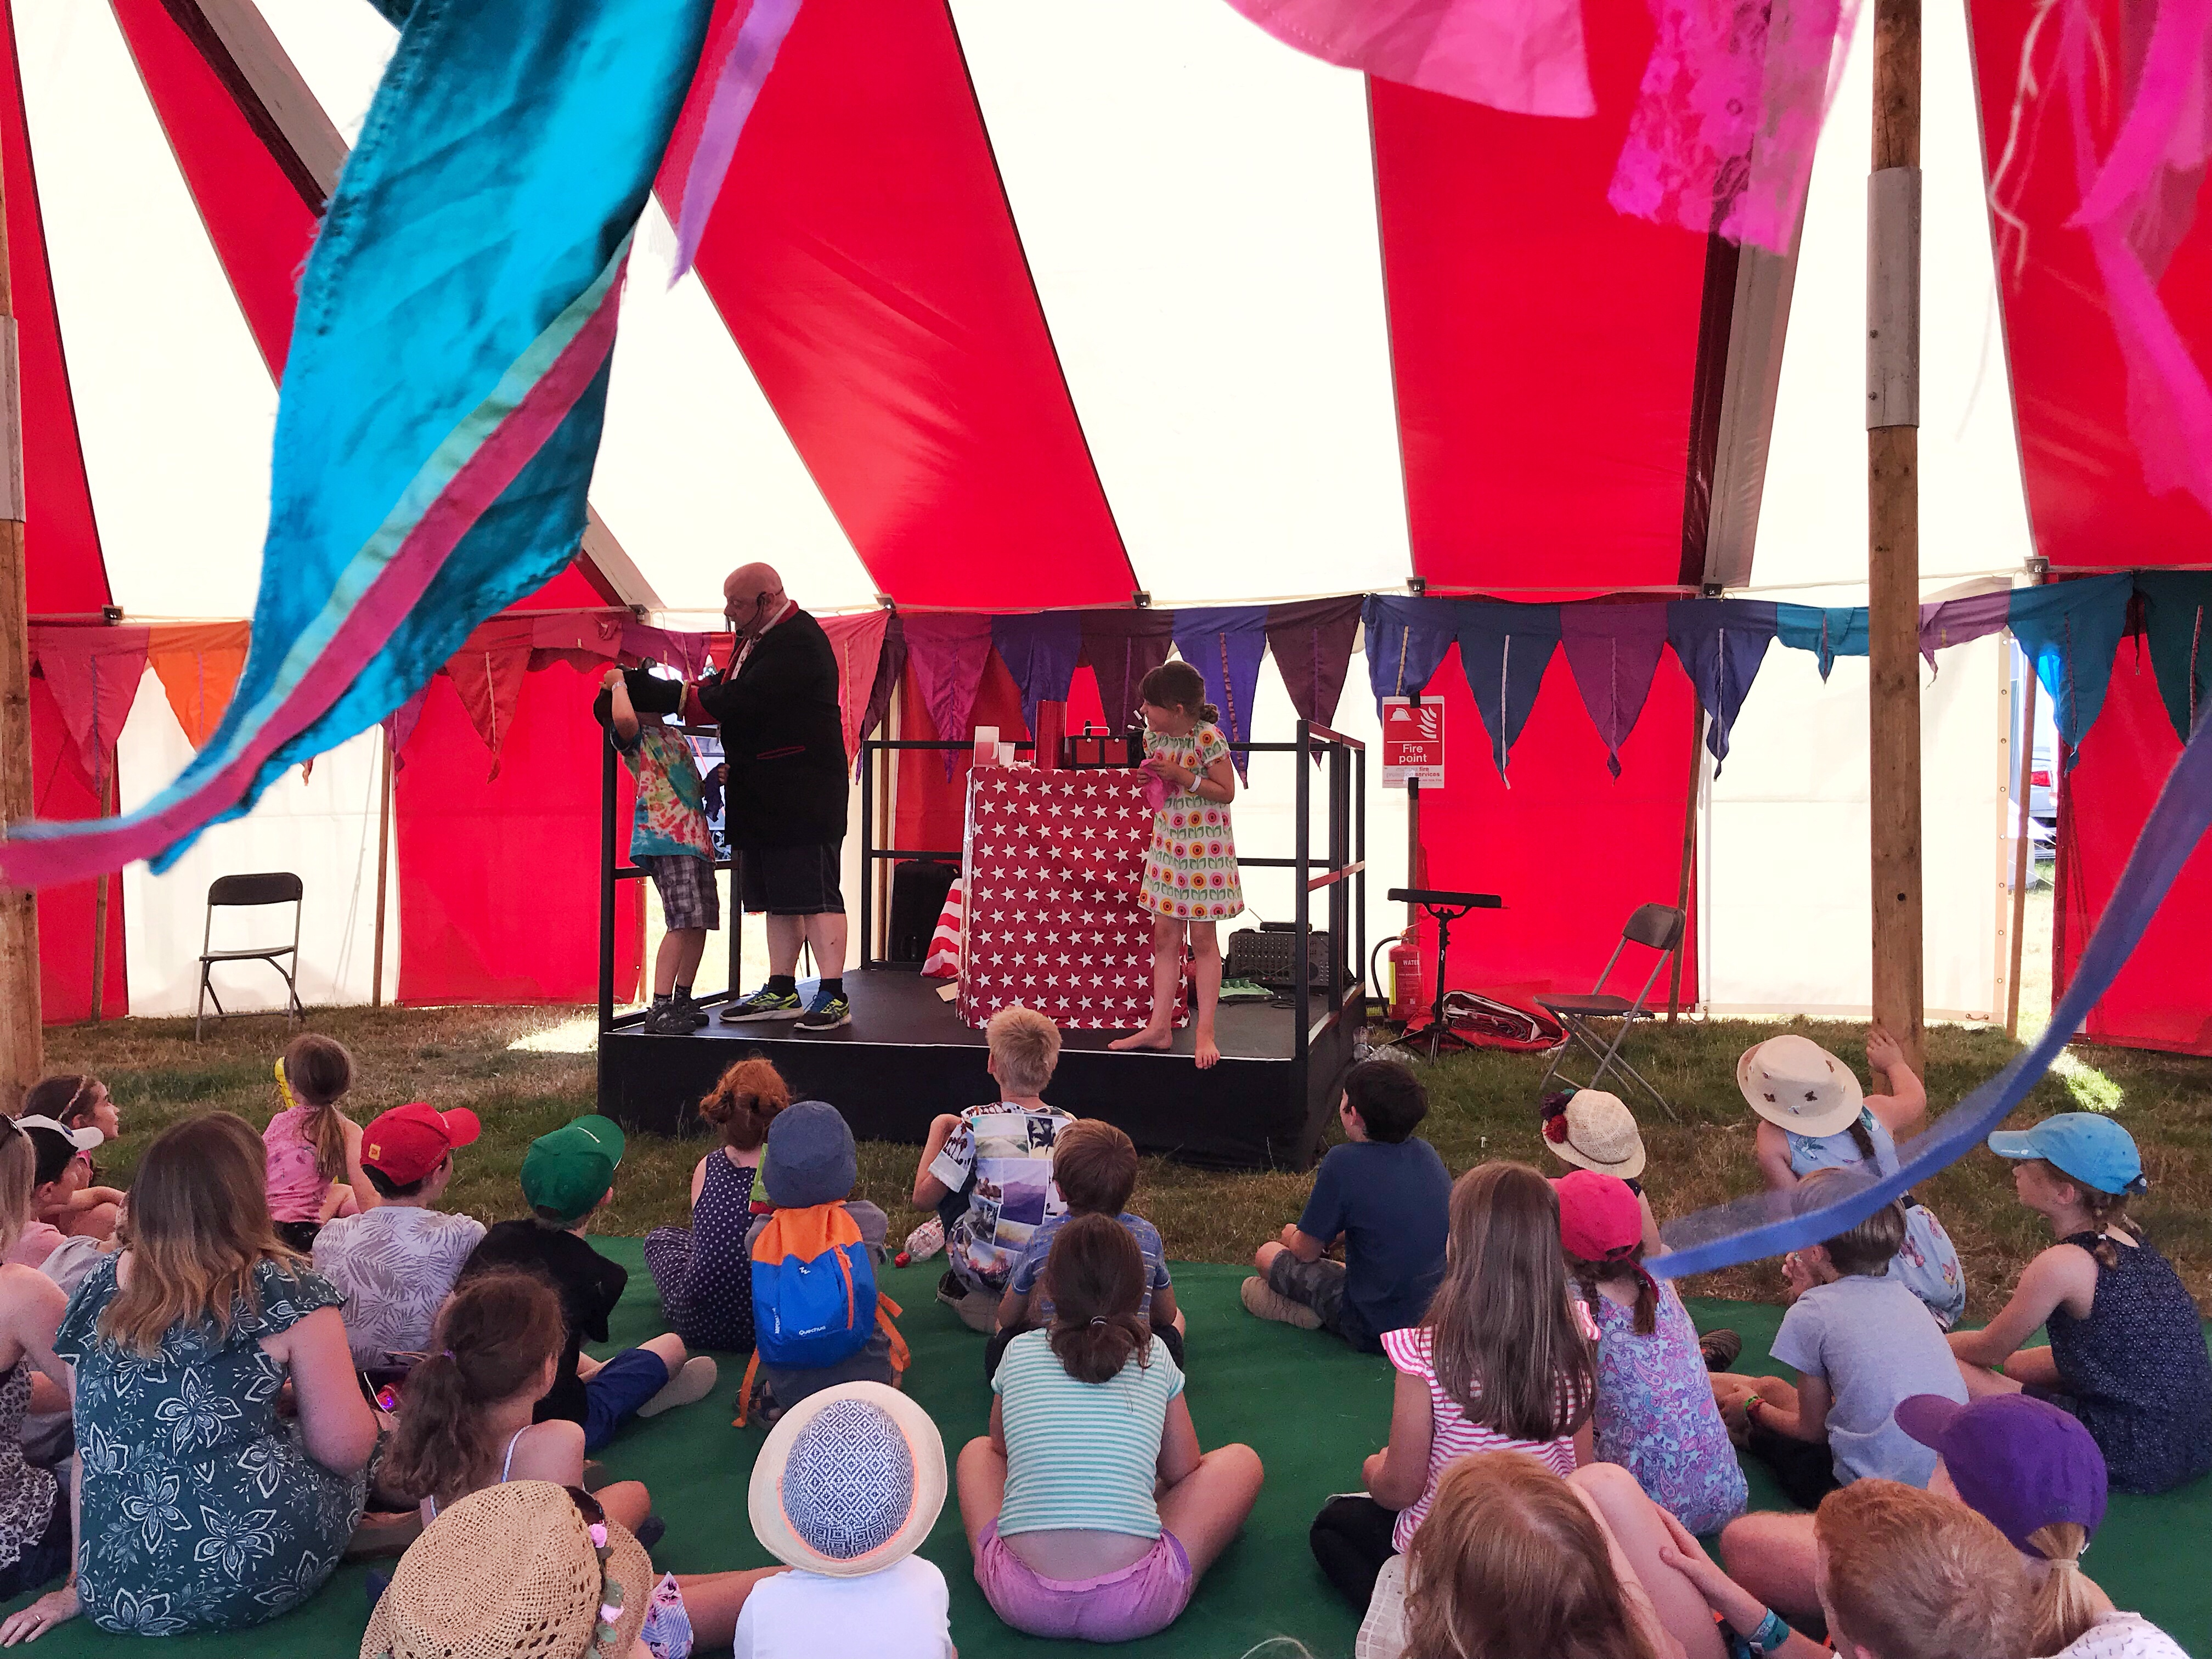 A group of children in a stripy red and white tent watching an entertainer at Cornbury Festival.